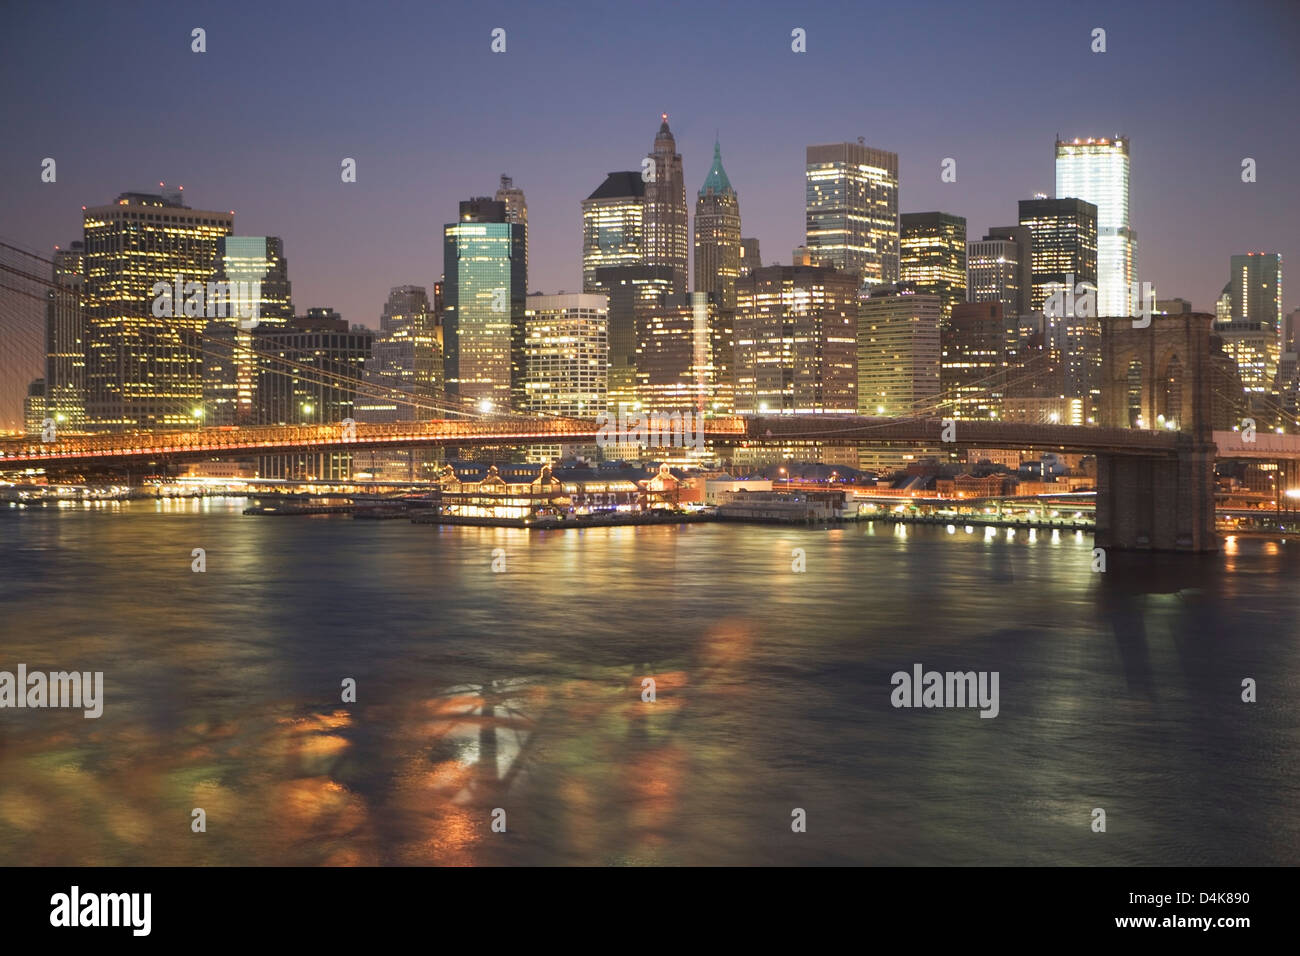 New York City lit up at night - Stock Image